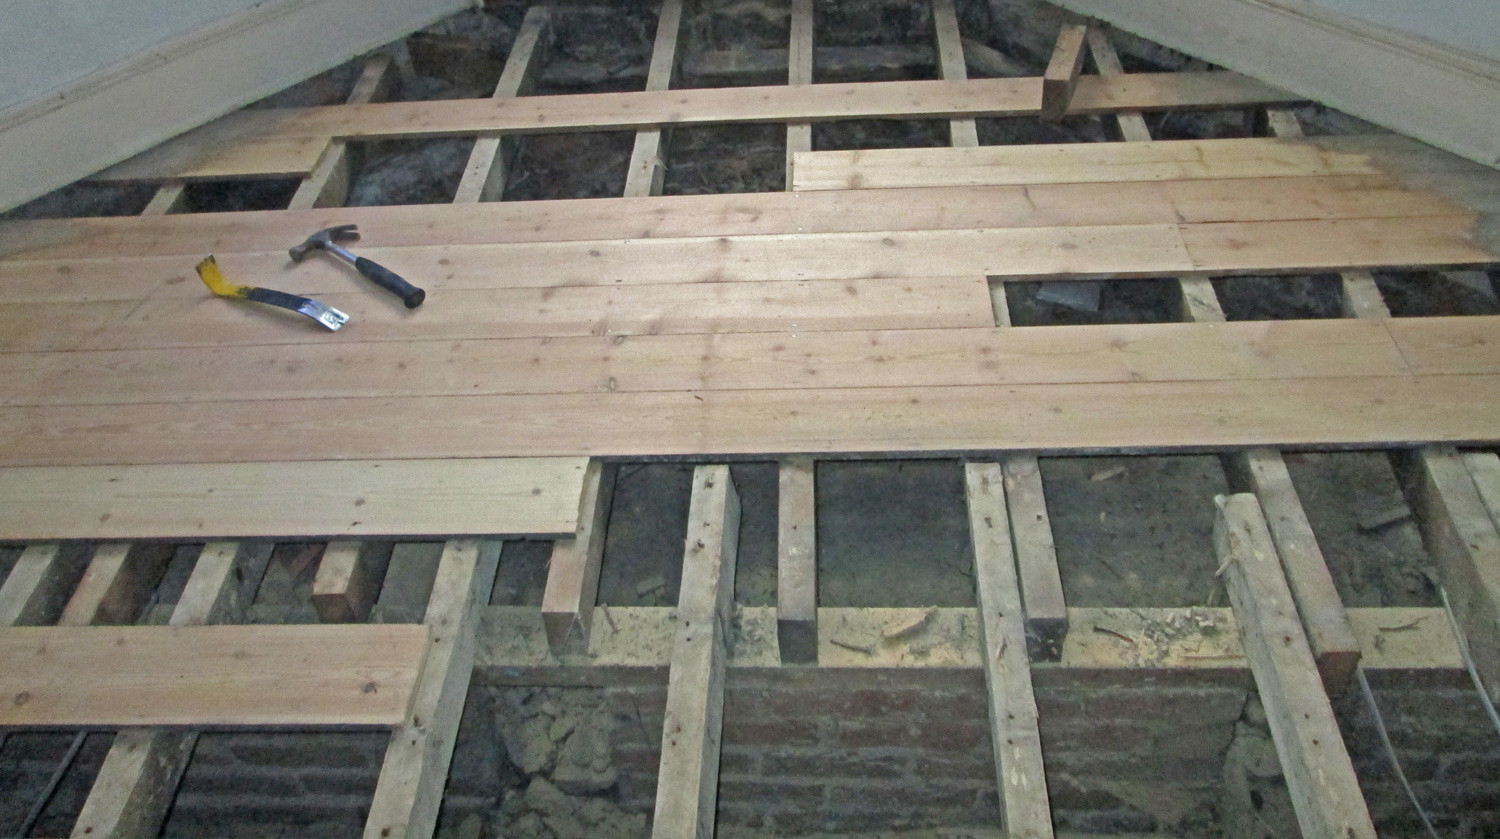 Glue Down Hardwood Flooring On Plywood Of How to Install Hardwood Floors Directly Over Joists Wood Floor Fitting Intended for Wood Flooring Nailed Down Over Joists